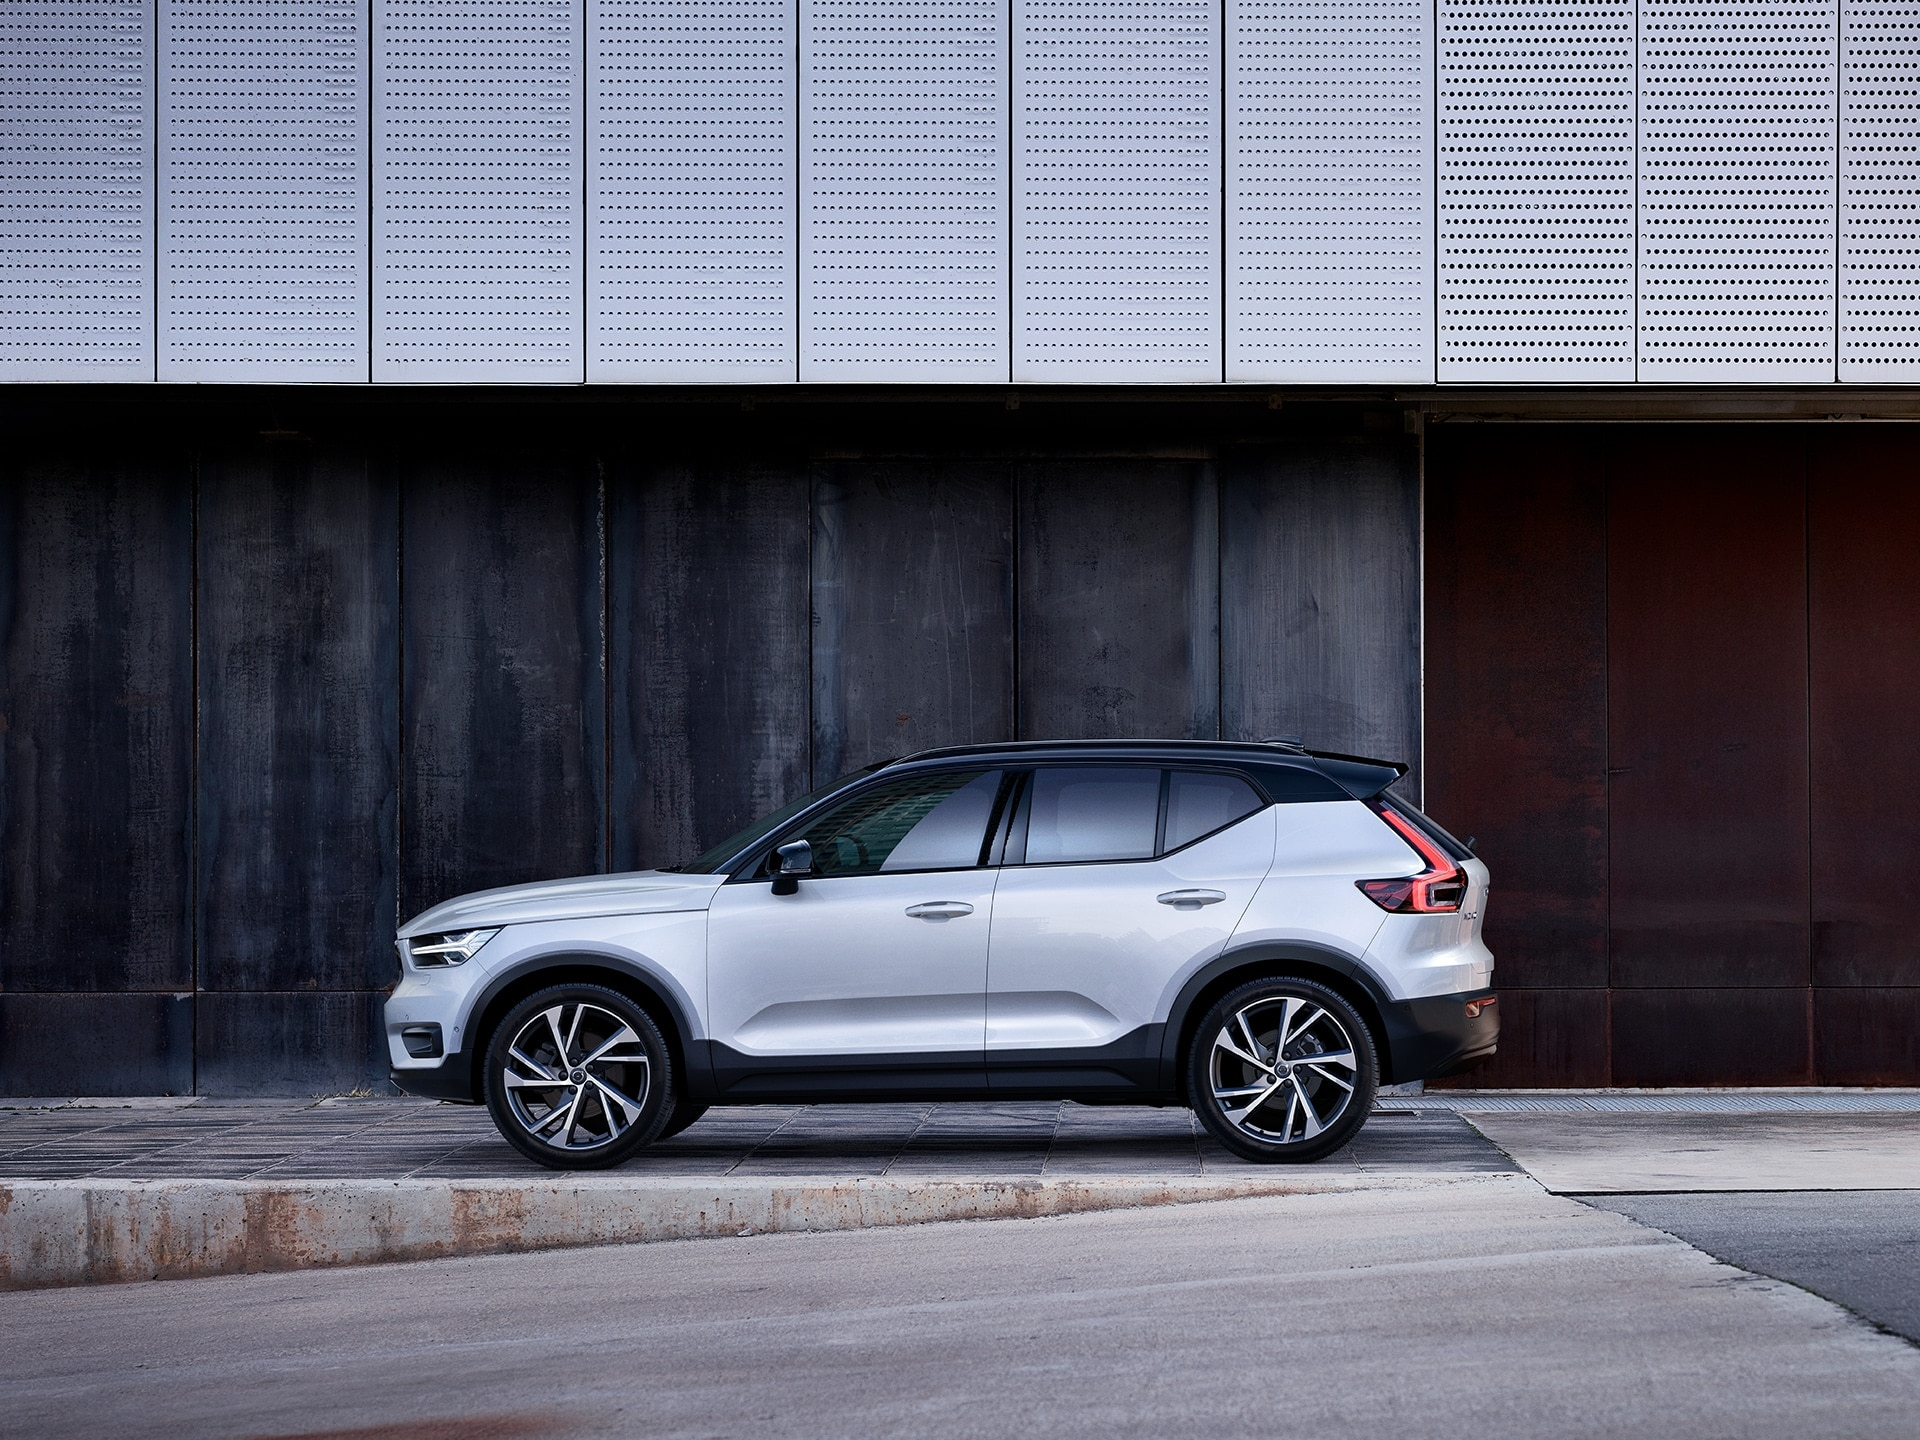 A white XC40 is parked outside a building.